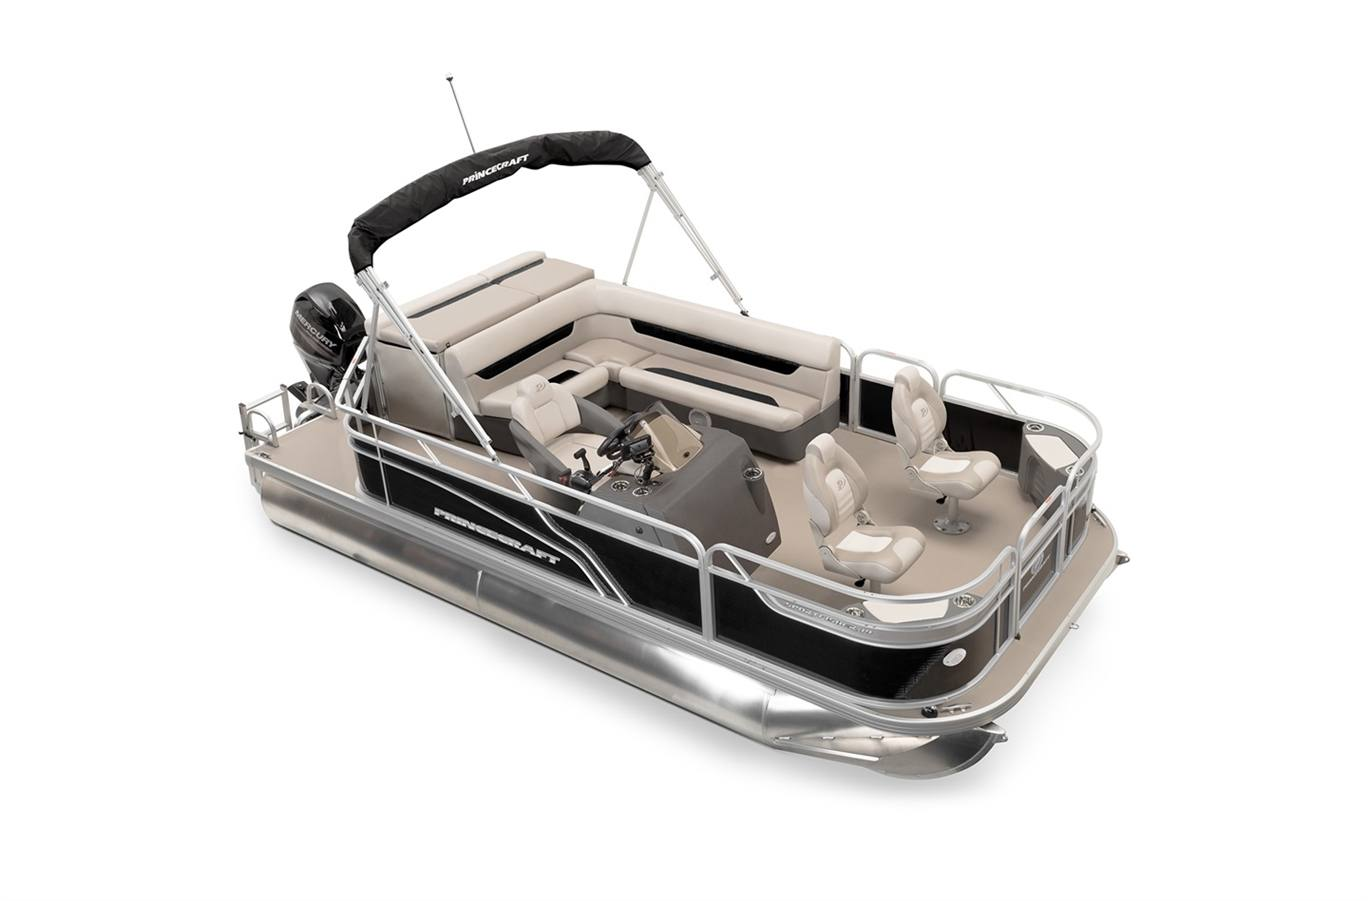 2019 Princecraft SPORTFISHER 19 2S for sale in Carleton Place, ON